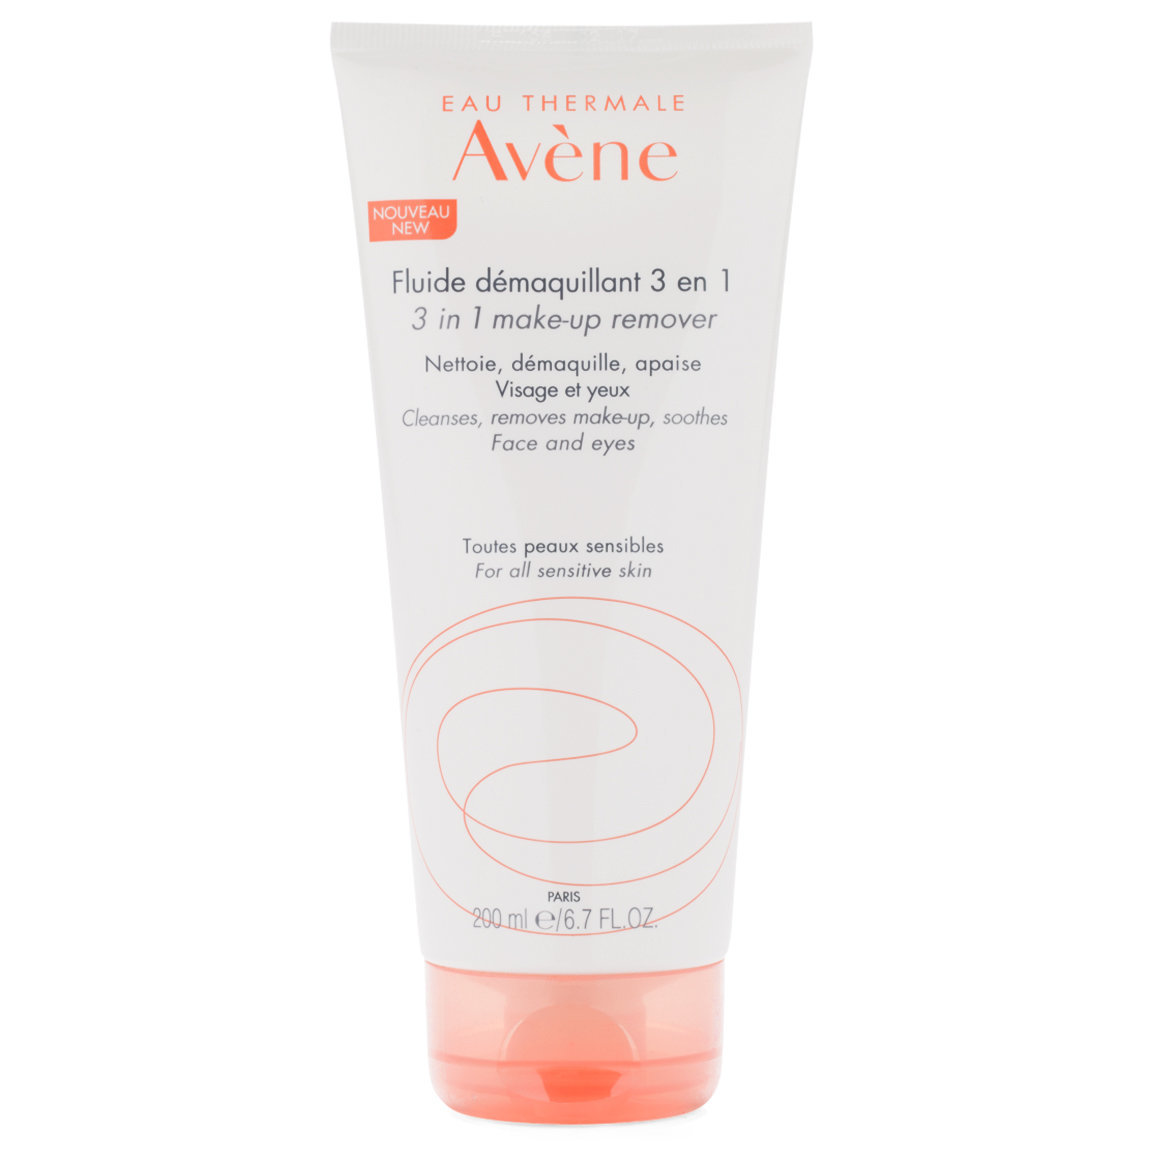 Eau Thermale Avène 3 In 1 Make-Up Remover 200 ml product smear.